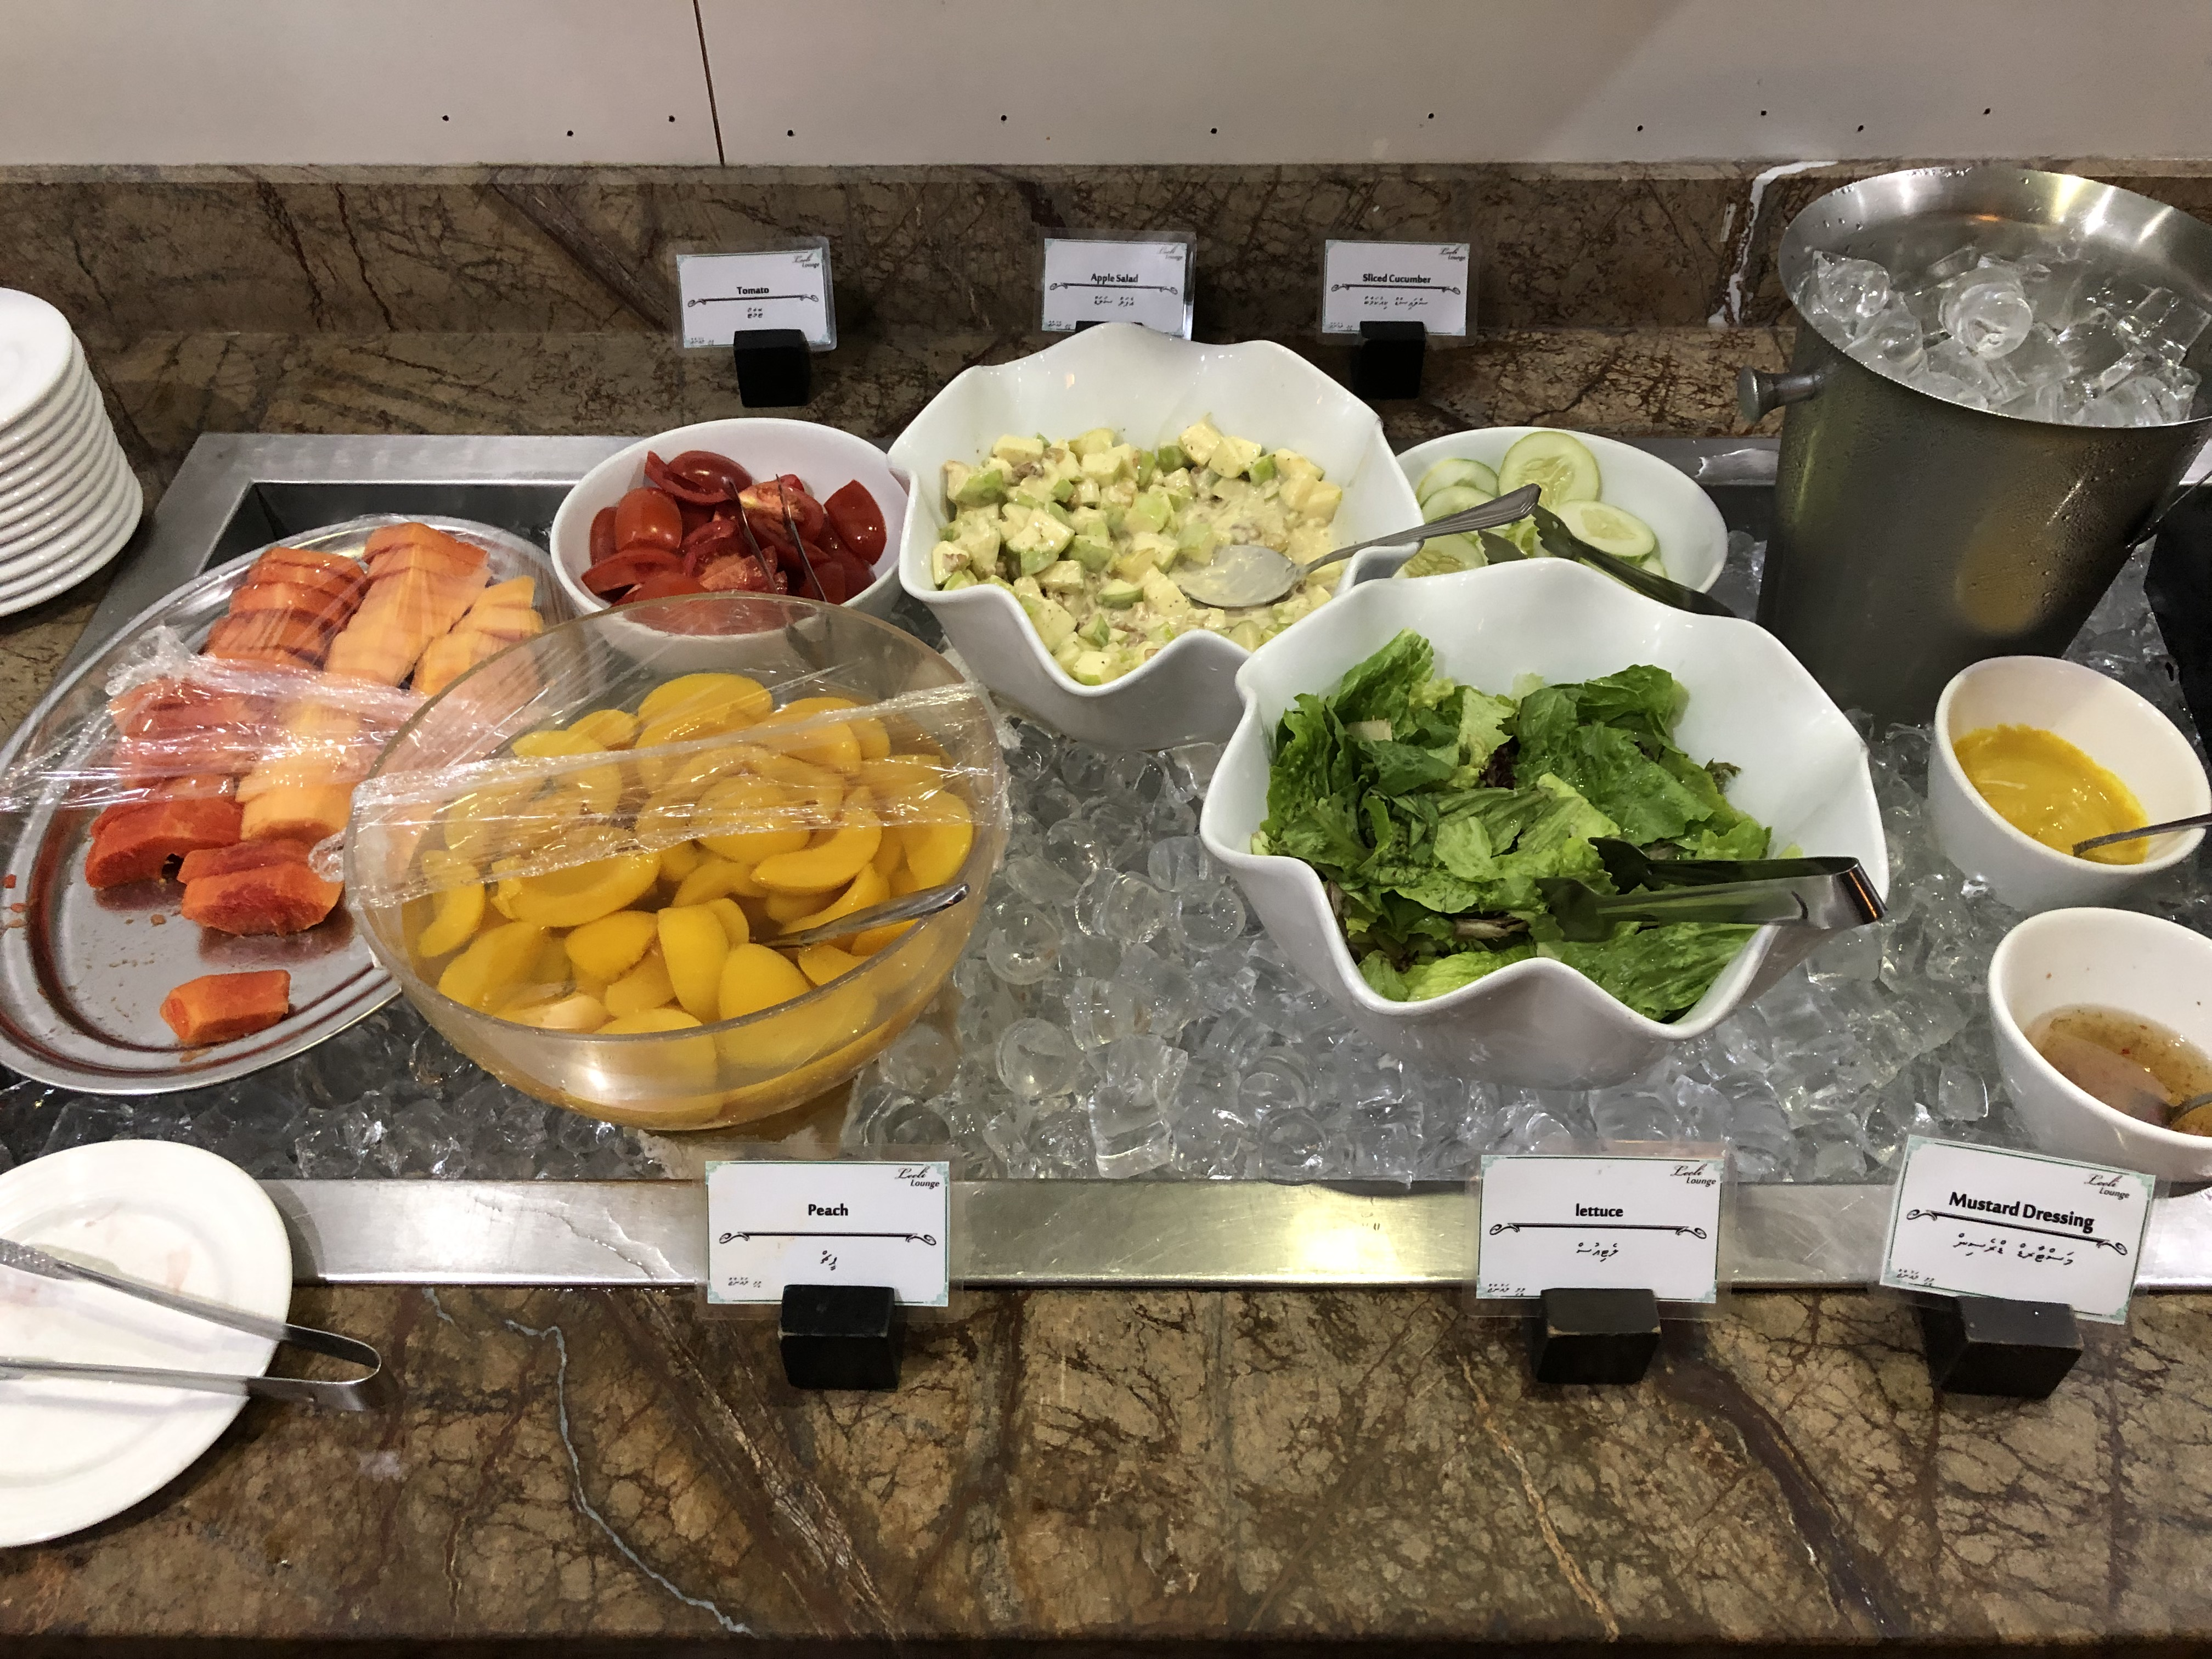 Leeli Lounge salad station